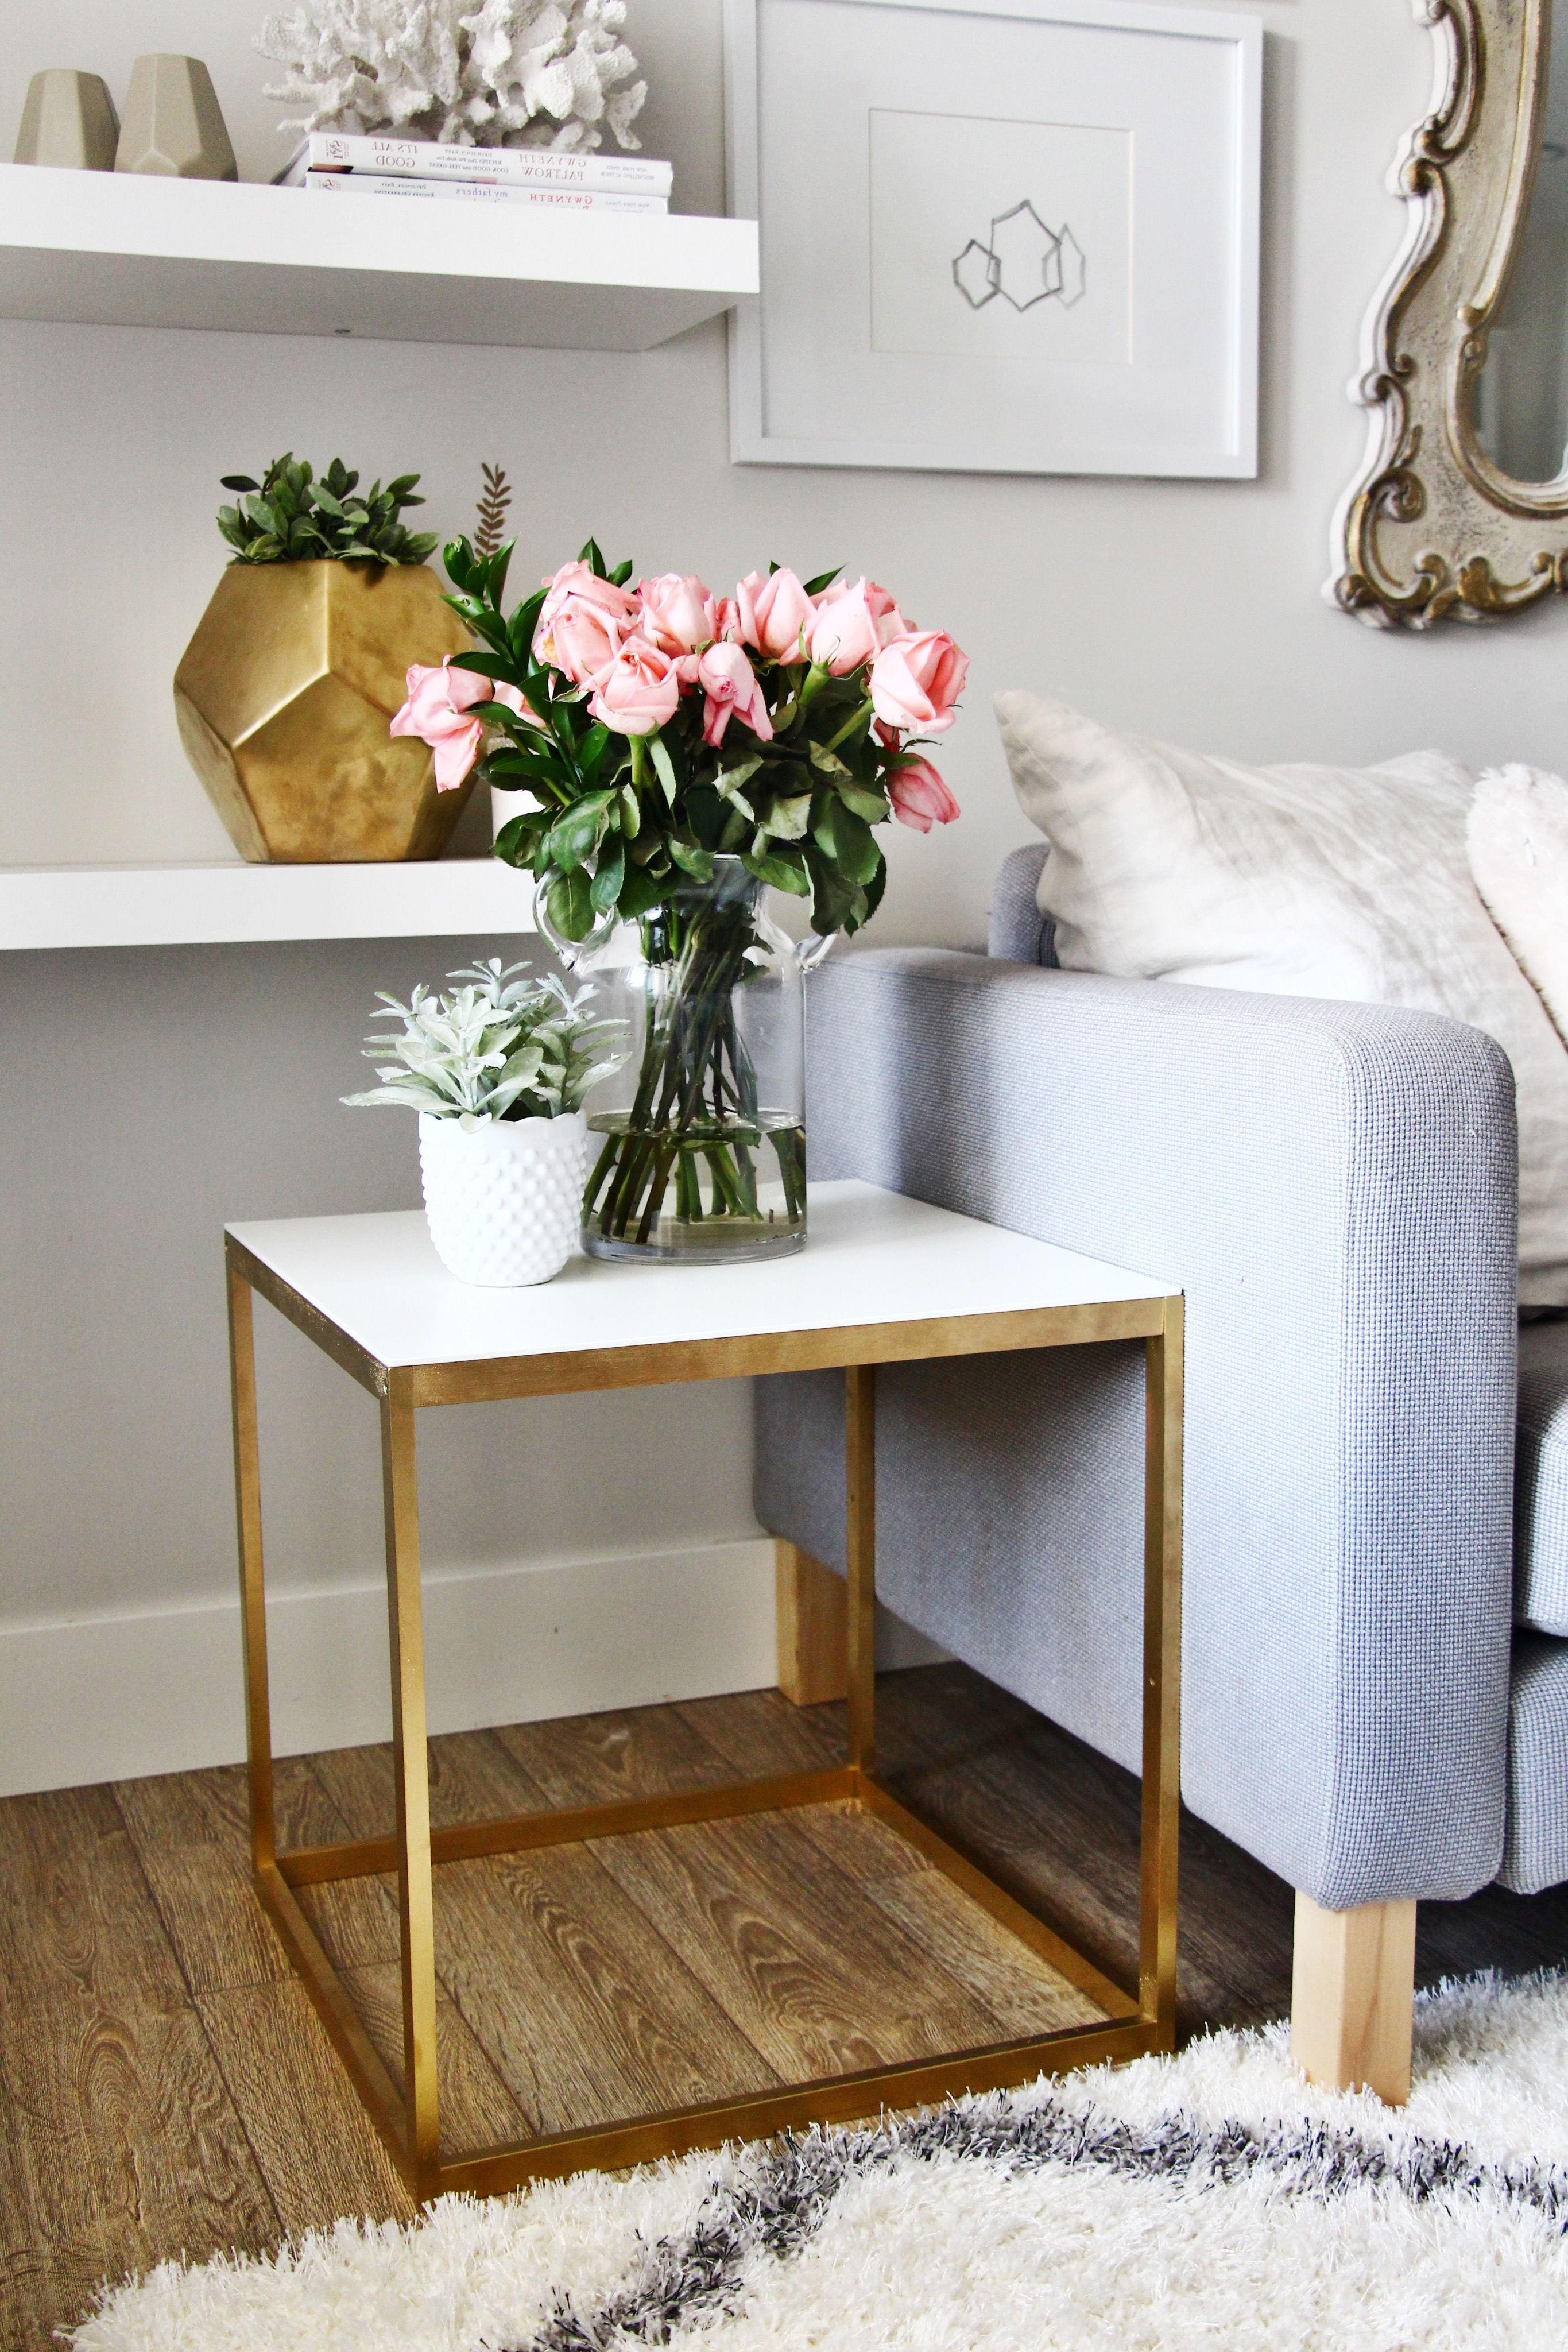 Pinterest Regarding Round White Wash Brass Painted Coffee Tables (View 10 of 20)